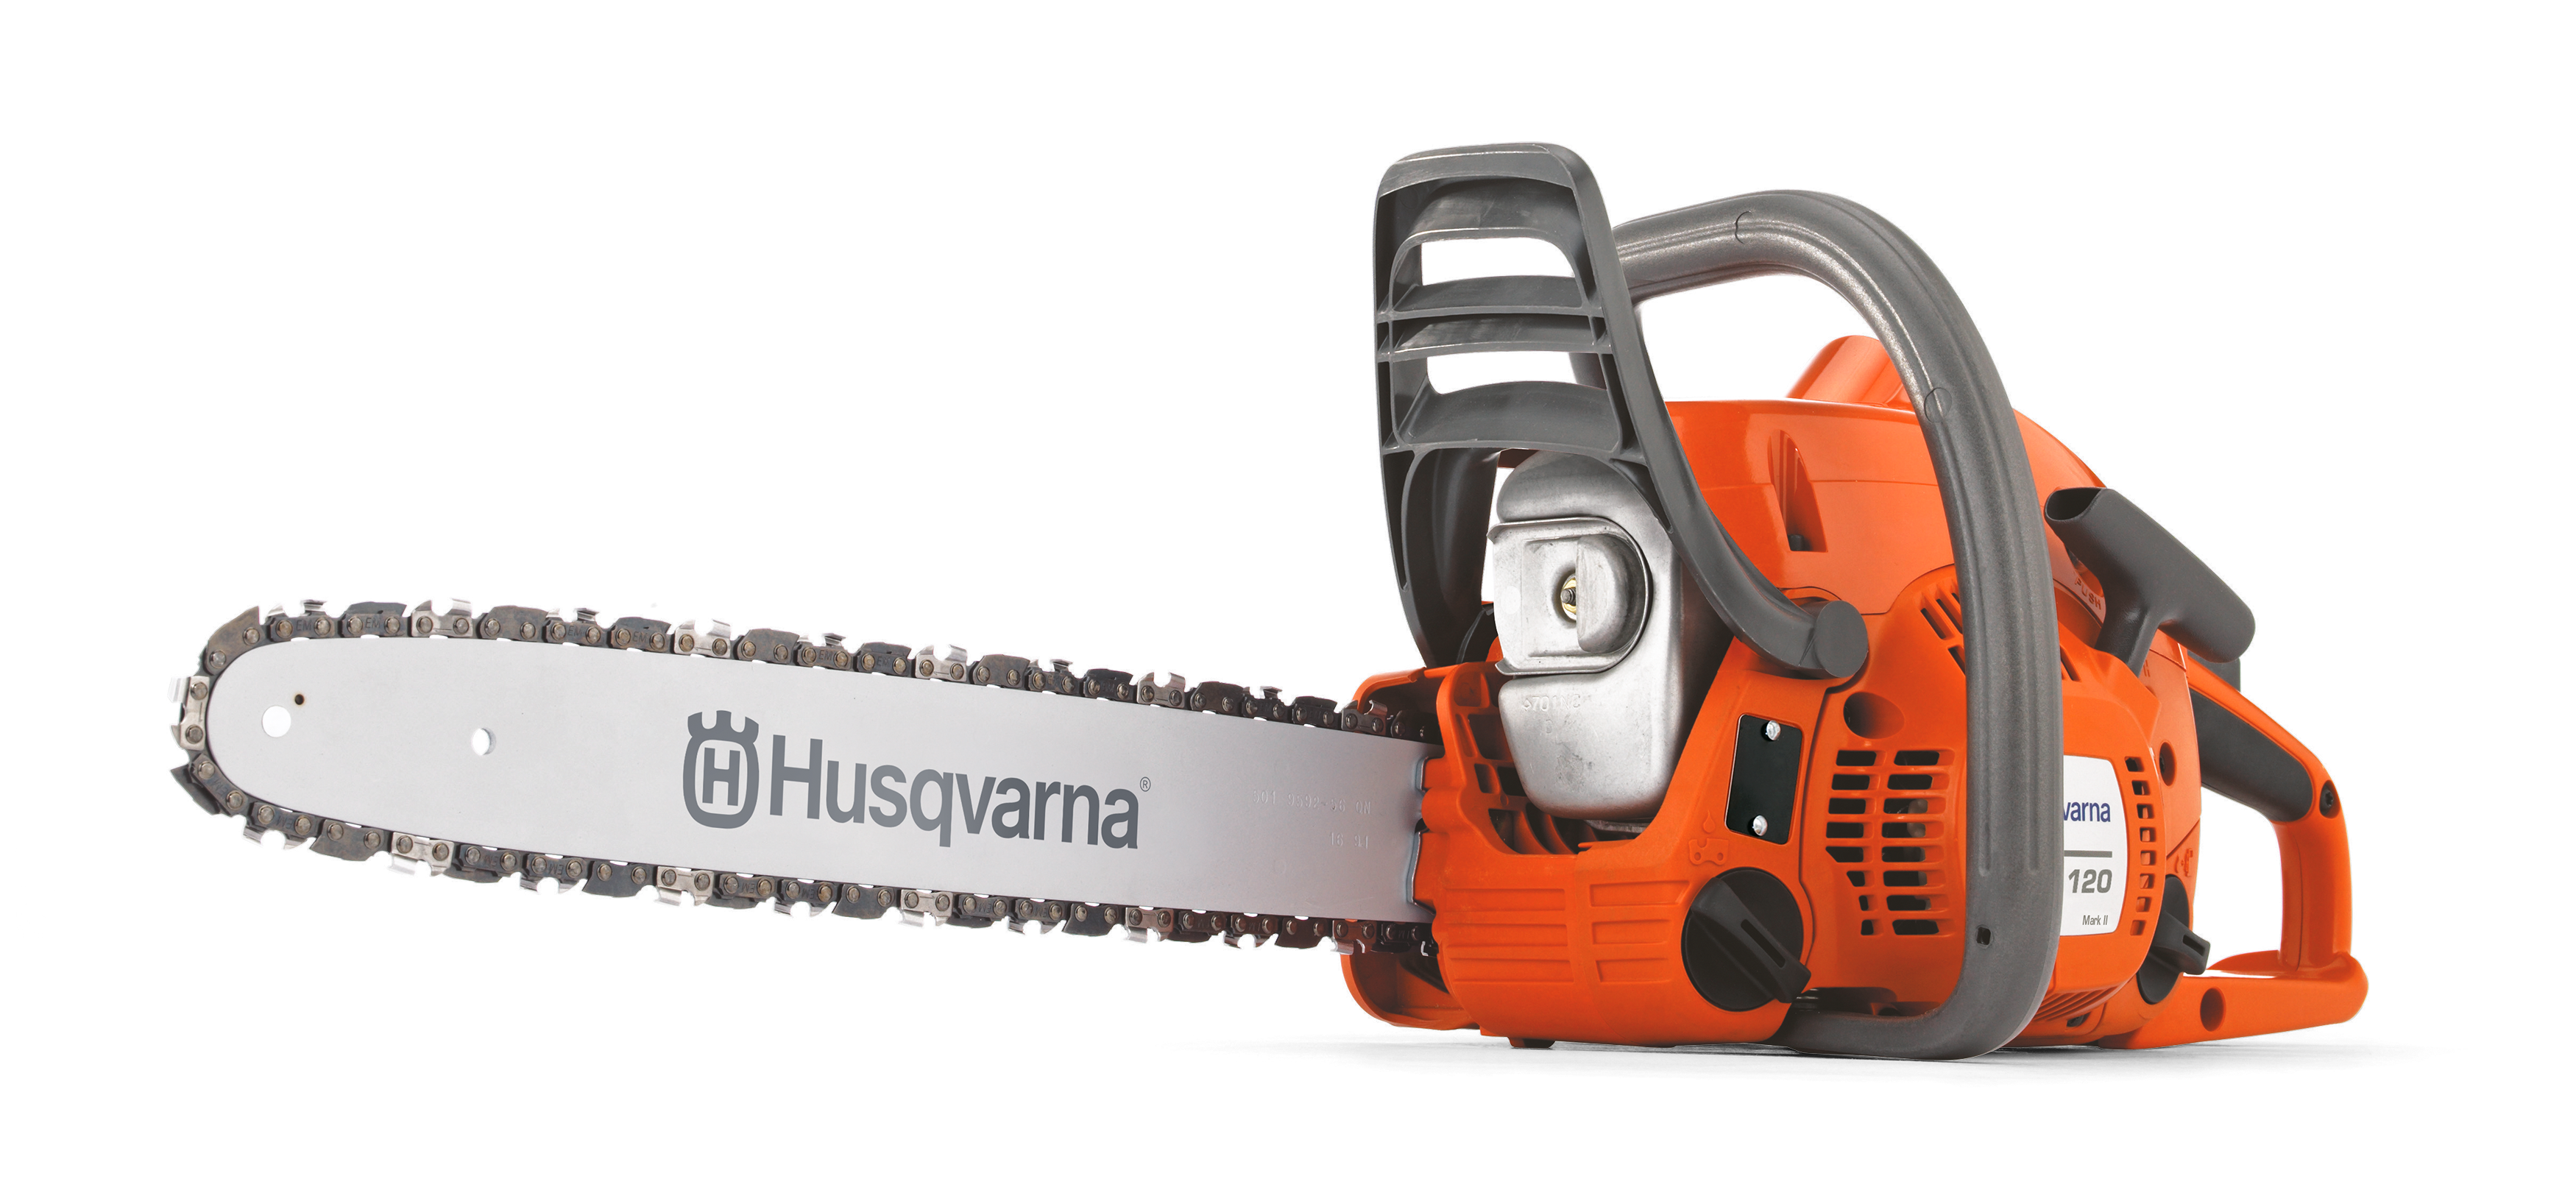 Image for 120 Mark II Gas Chainsaw                                                                                                         from HusqvarnaB2C